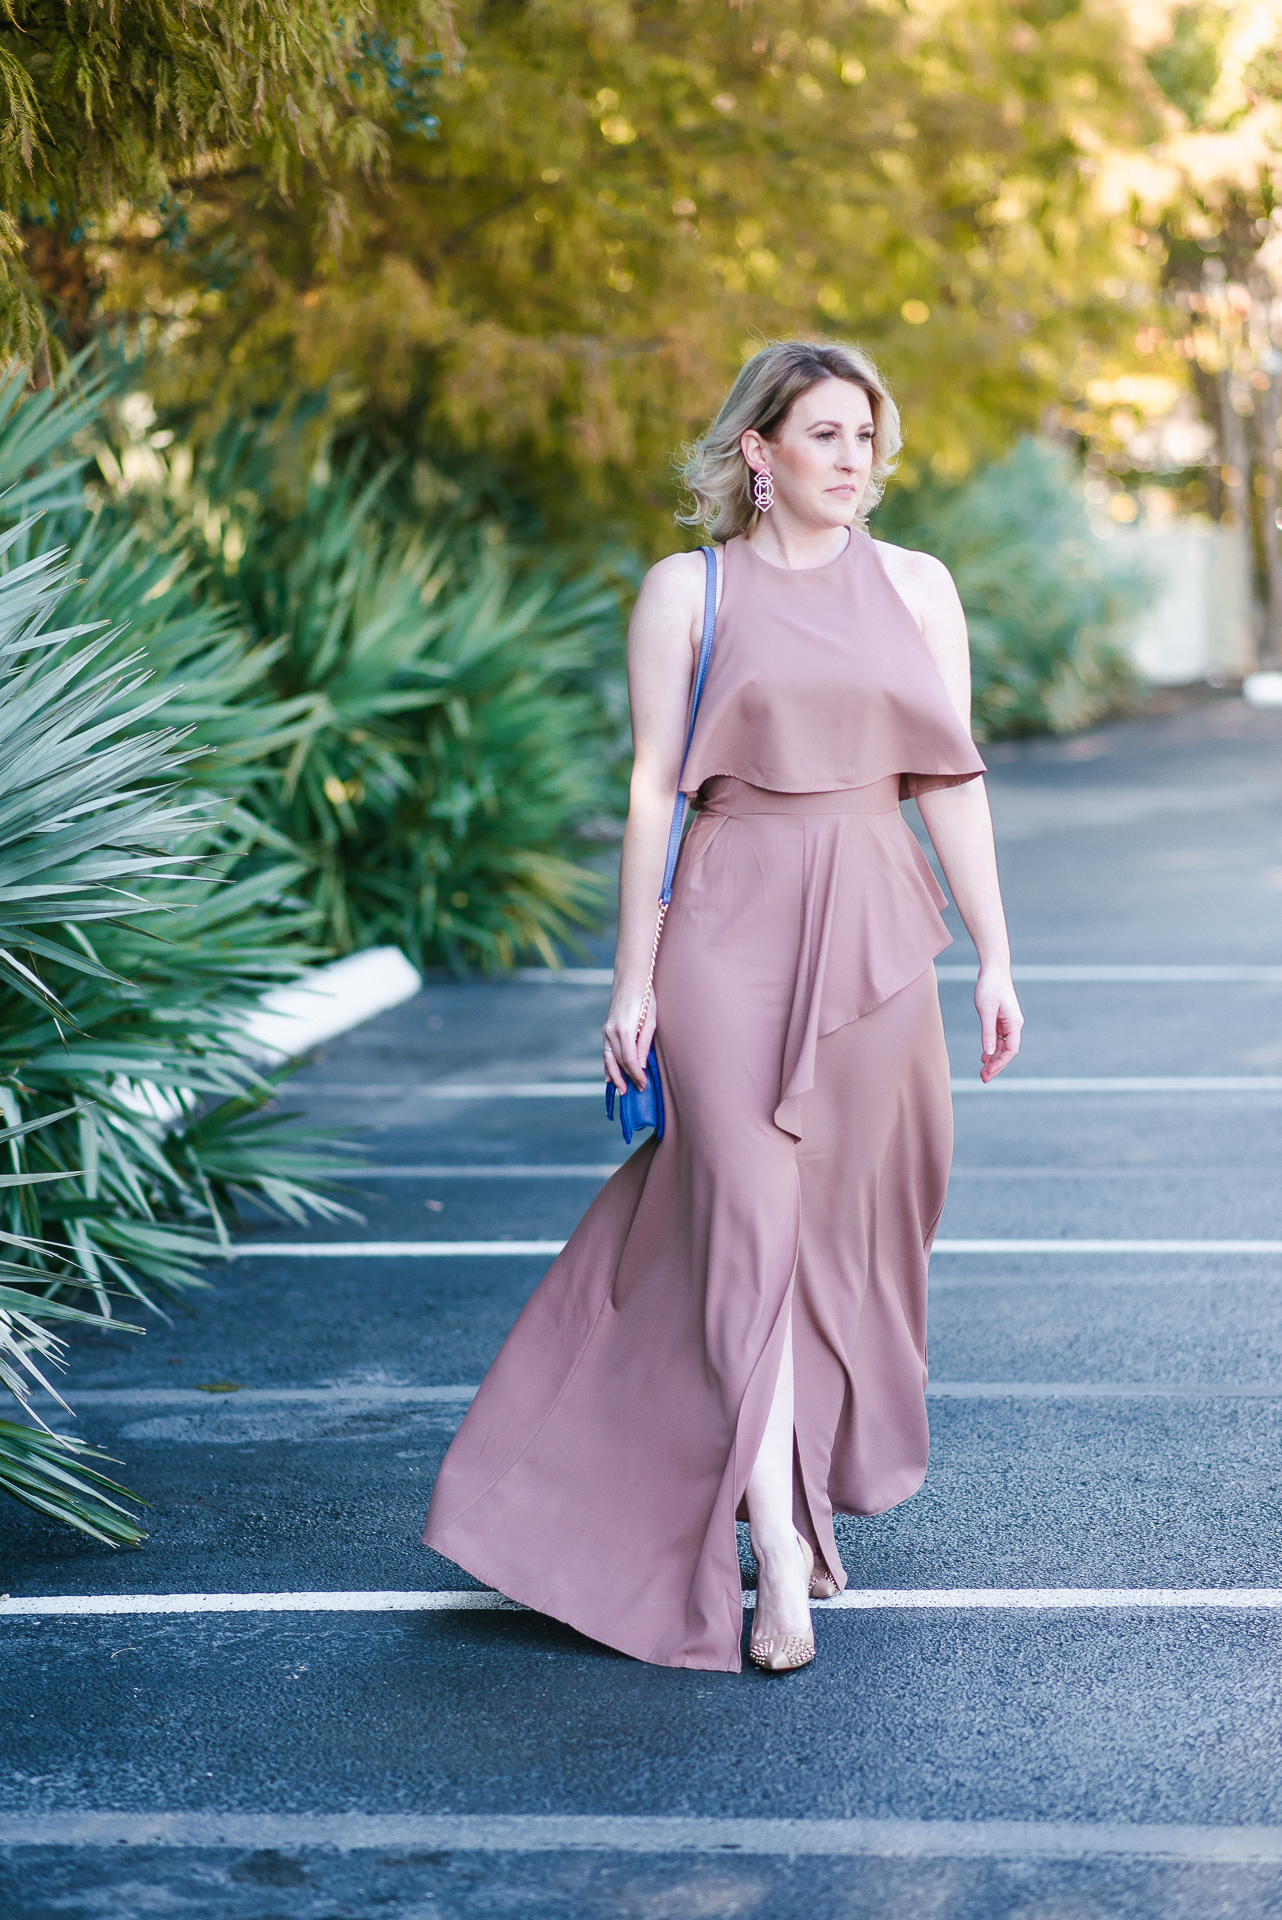 Fall Wedding Guest Dress Under $100 by Houston fashion blogger Gracefully Sassy